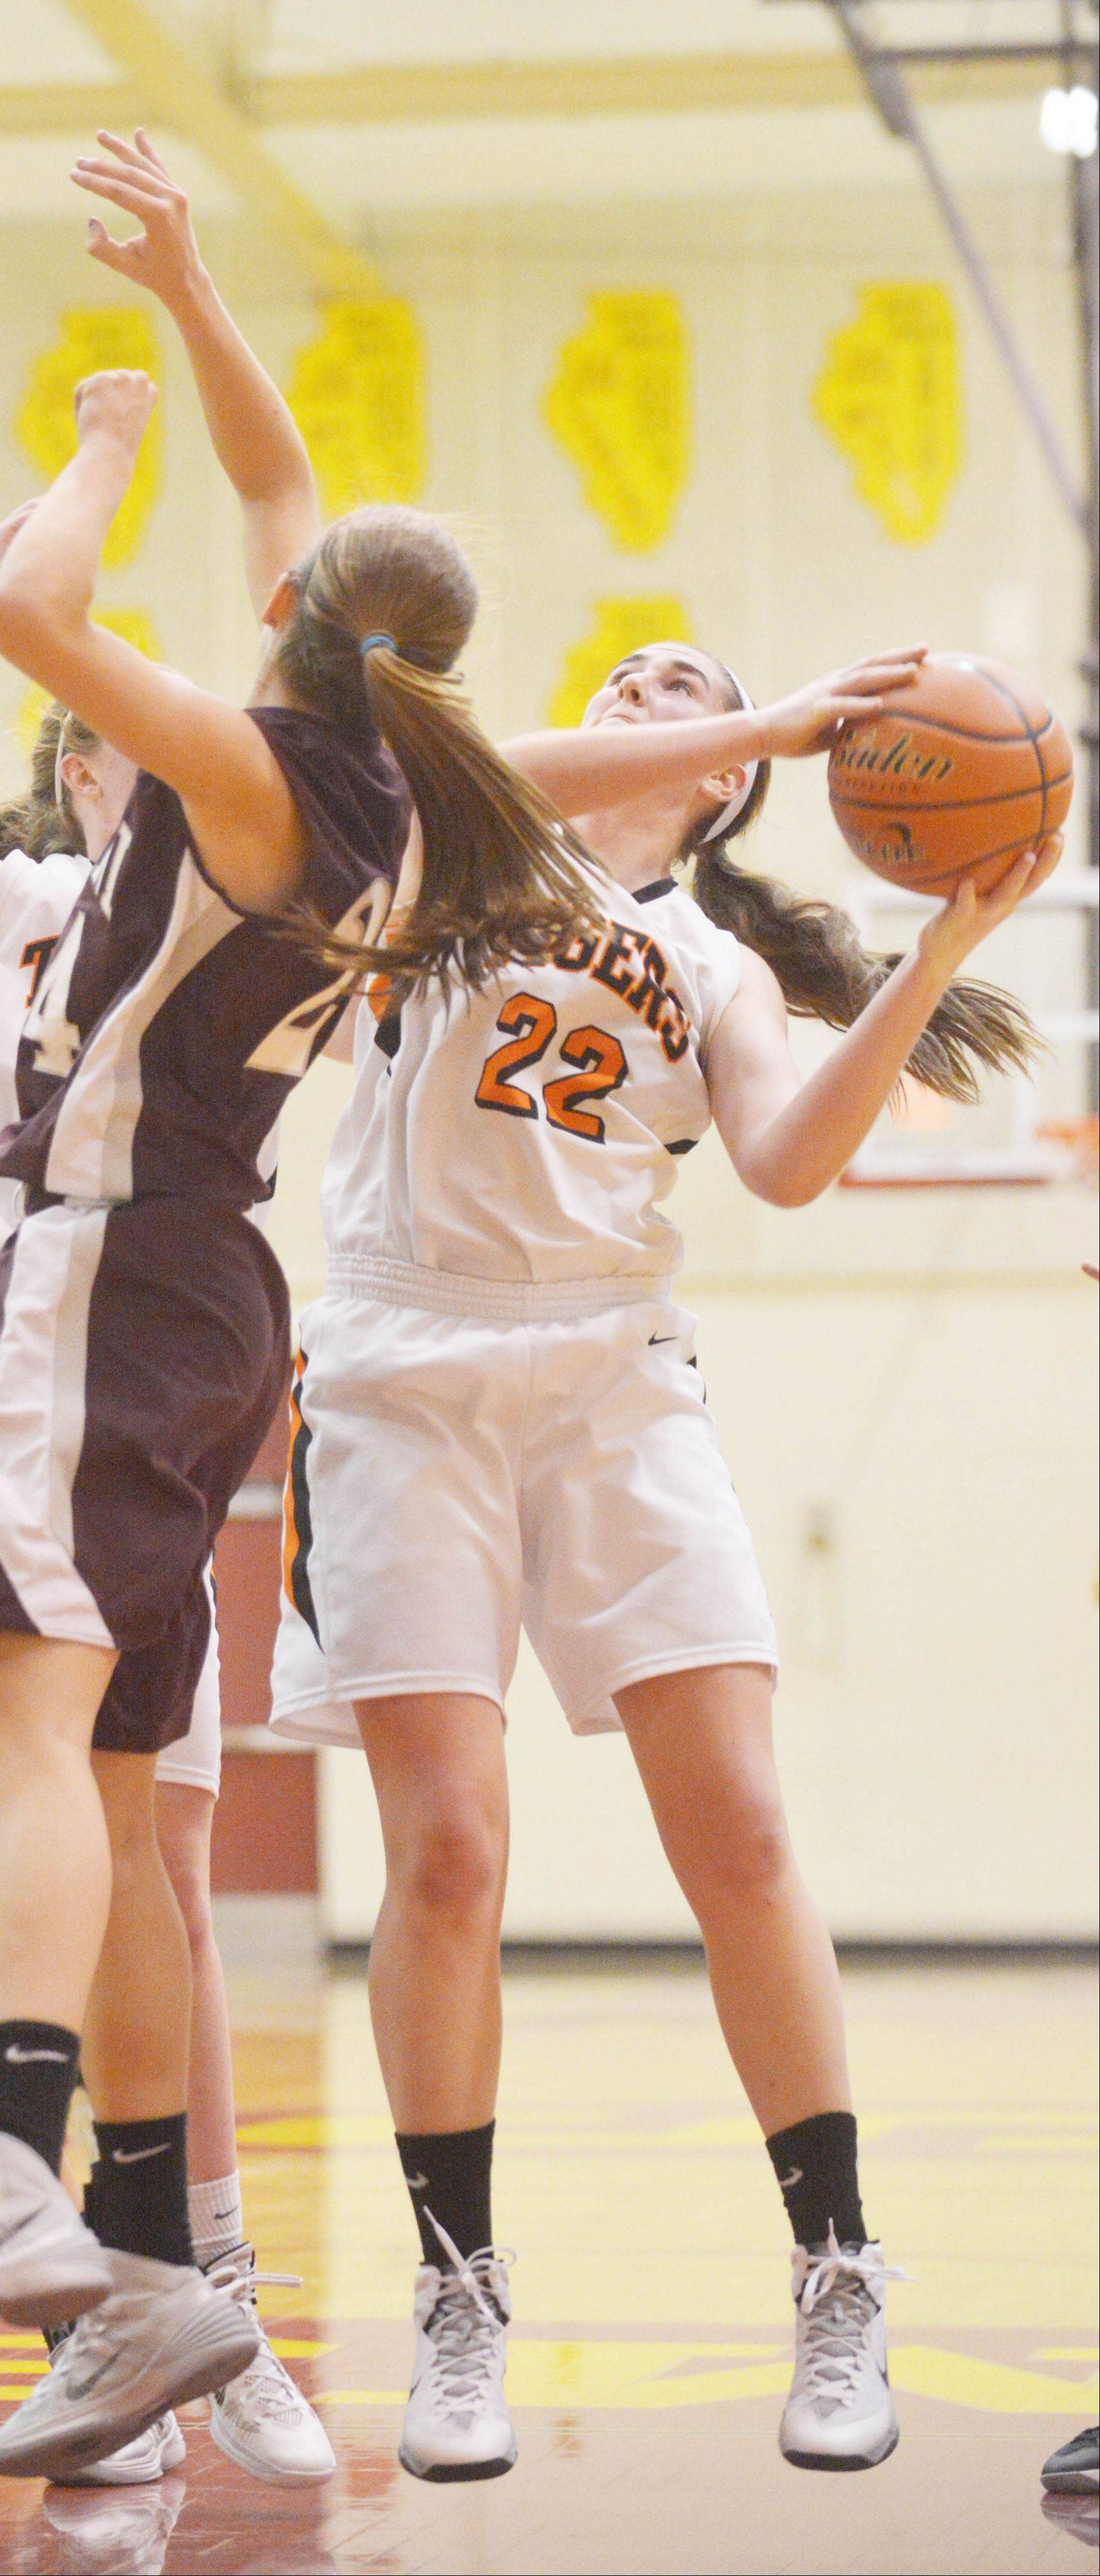 Melinda Franke of Wheaton Warrenville South takes a shot during the Wheaton Warrenville South vs. Montini girls basketball game at the Schaumburg tournament Saturday.